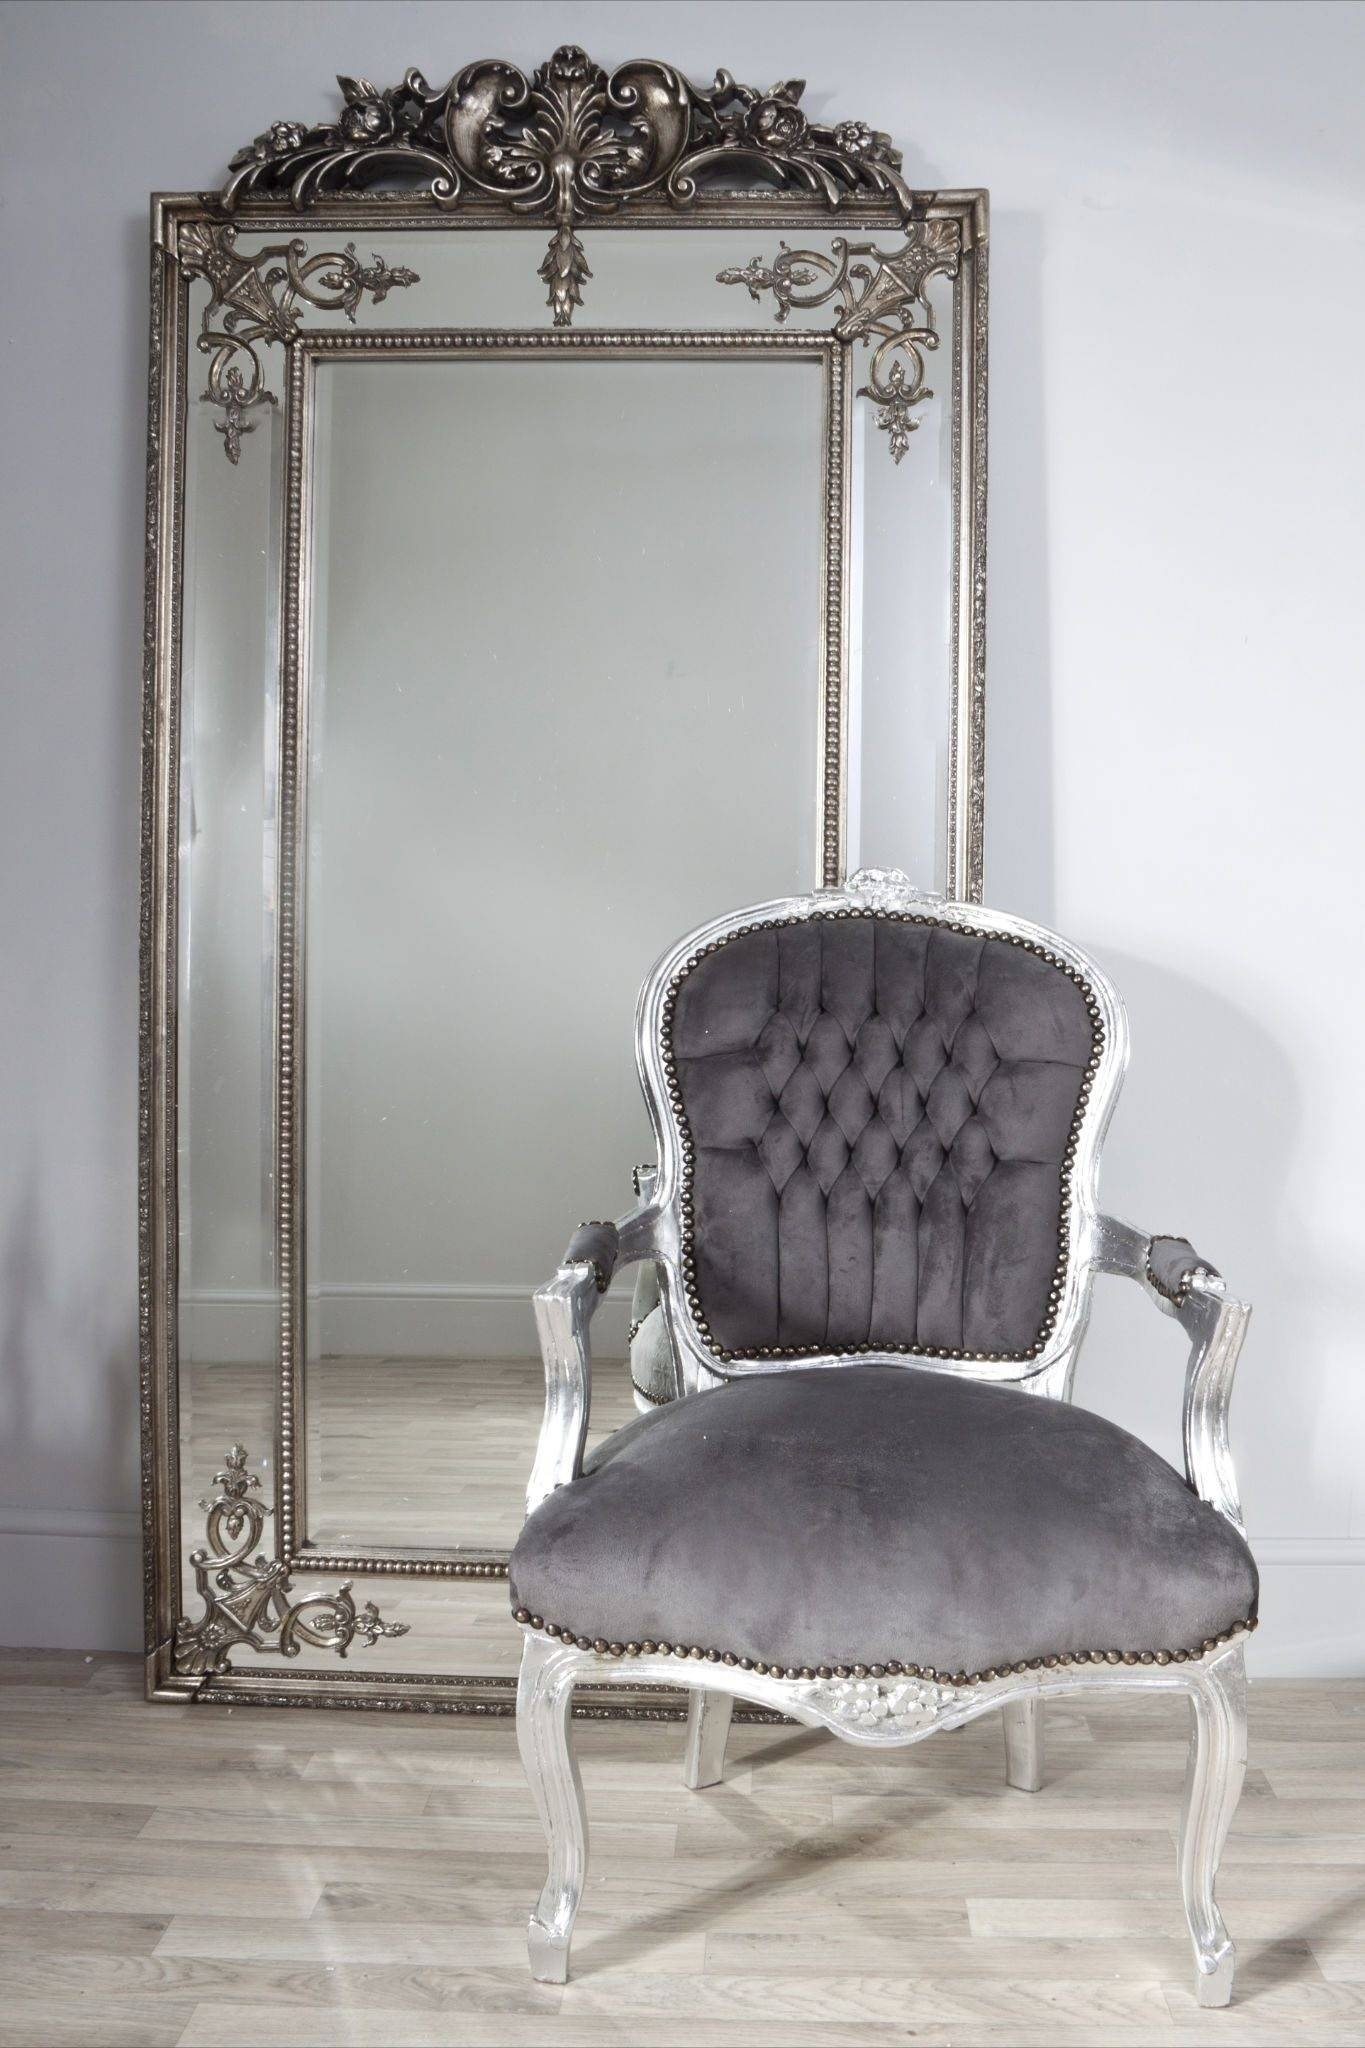 Ornate Mirrors For Sale 125 Awesome Exterior With Large Wall throughout Ornate Full Length Mirrors (Image 21 of 25)